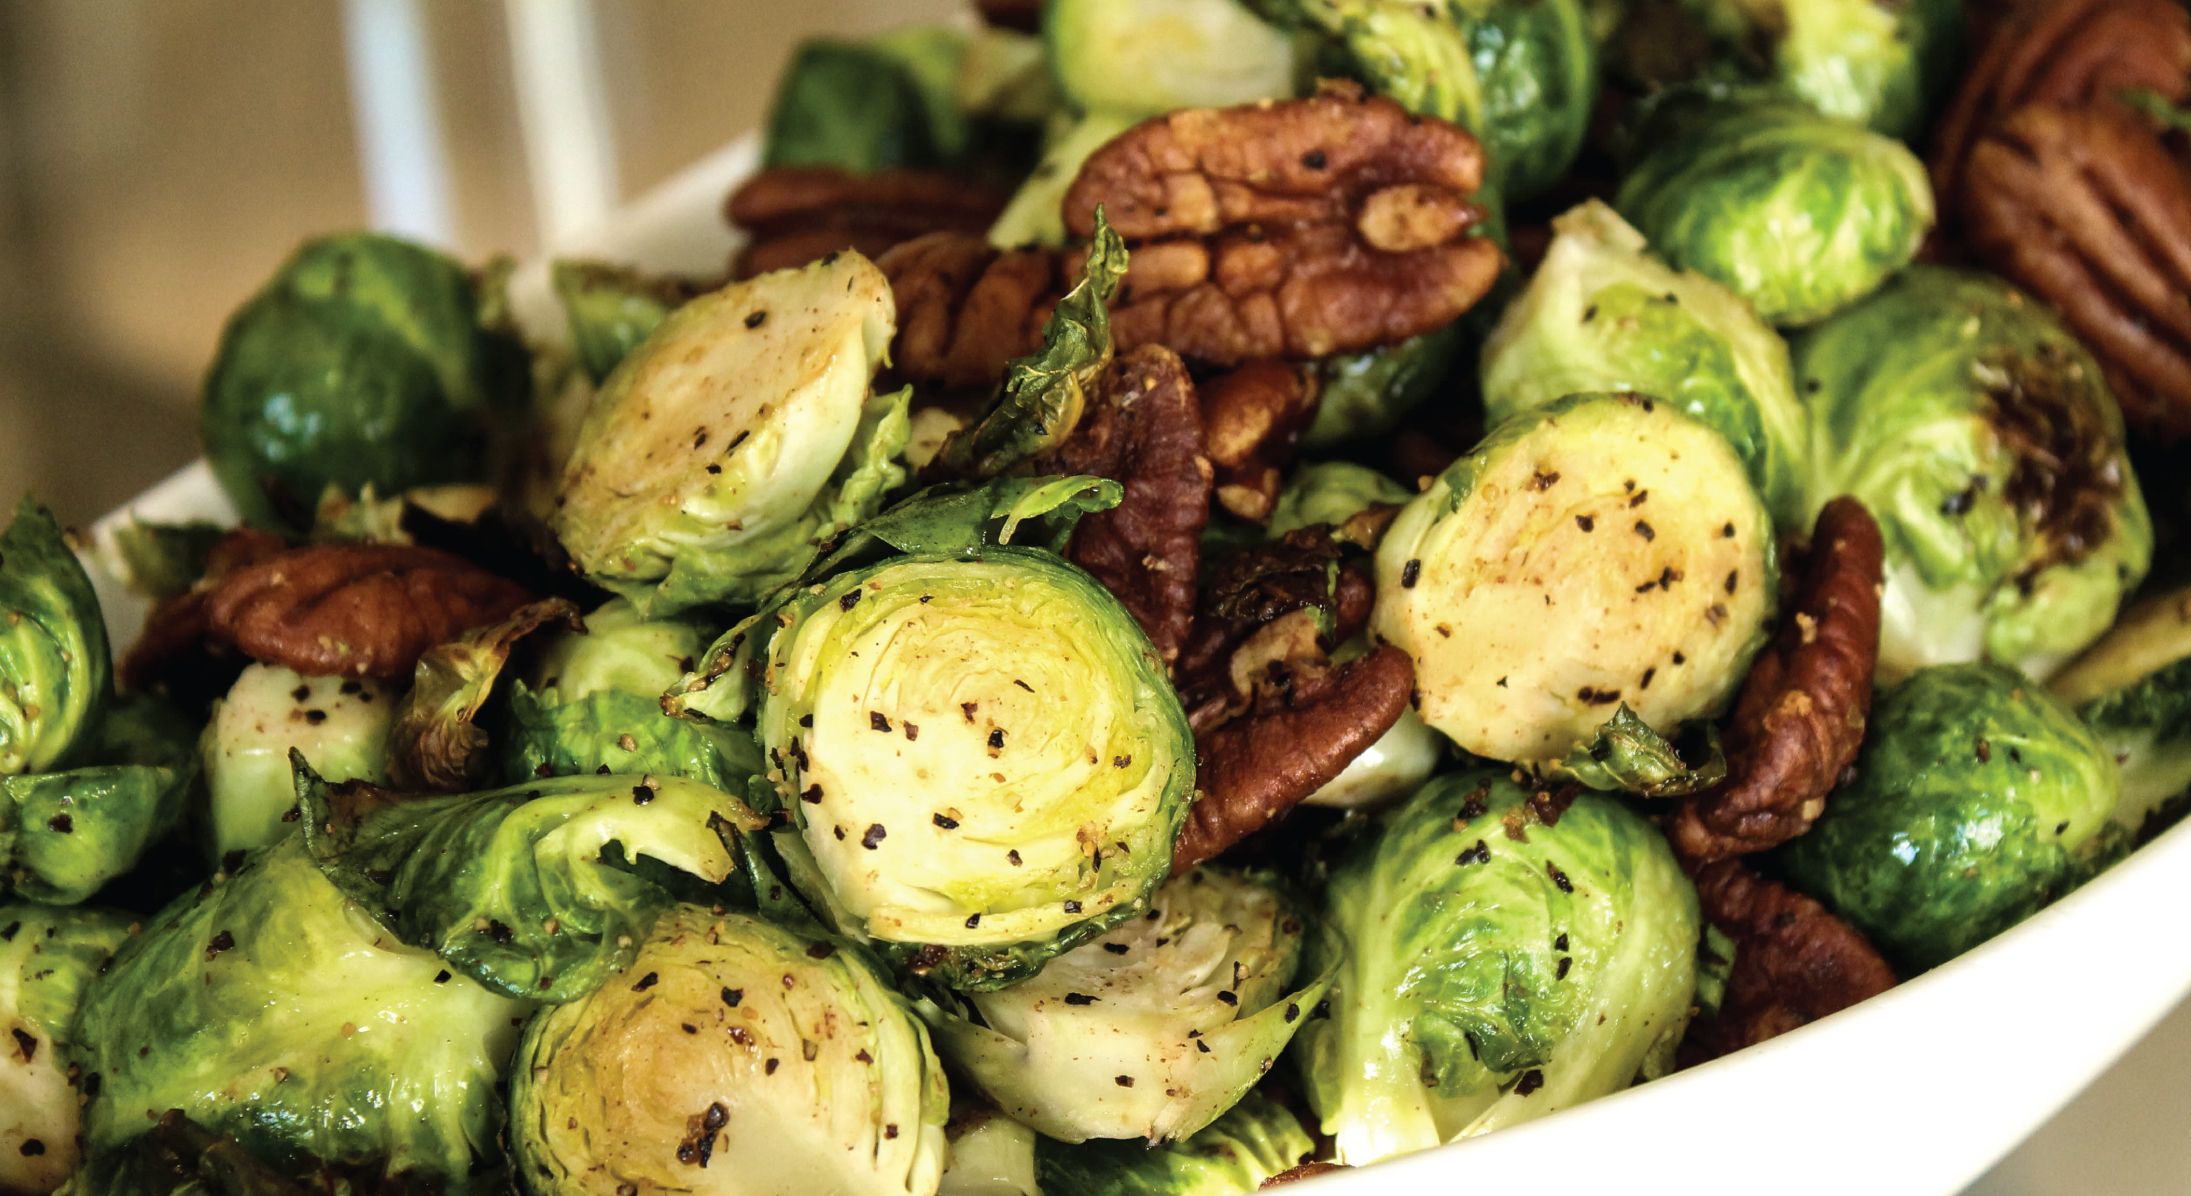 Shiloh Farms Maple Roasted Brussel Sprouts with Pecans